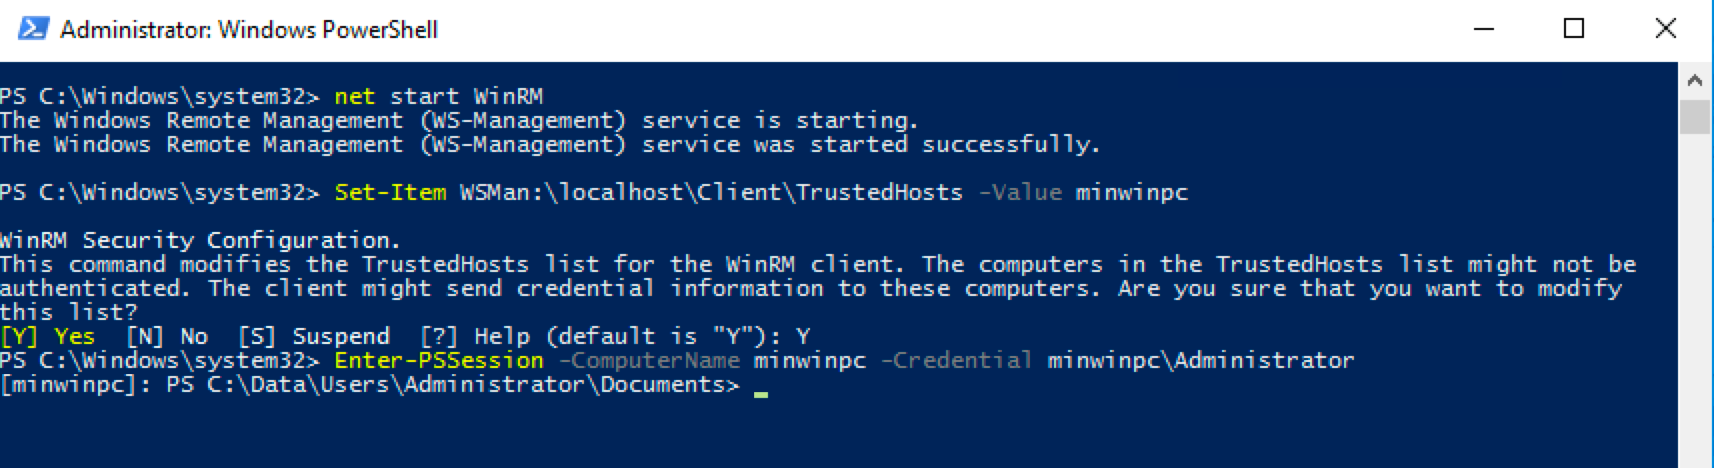 projects_Powershell_session_begin.png